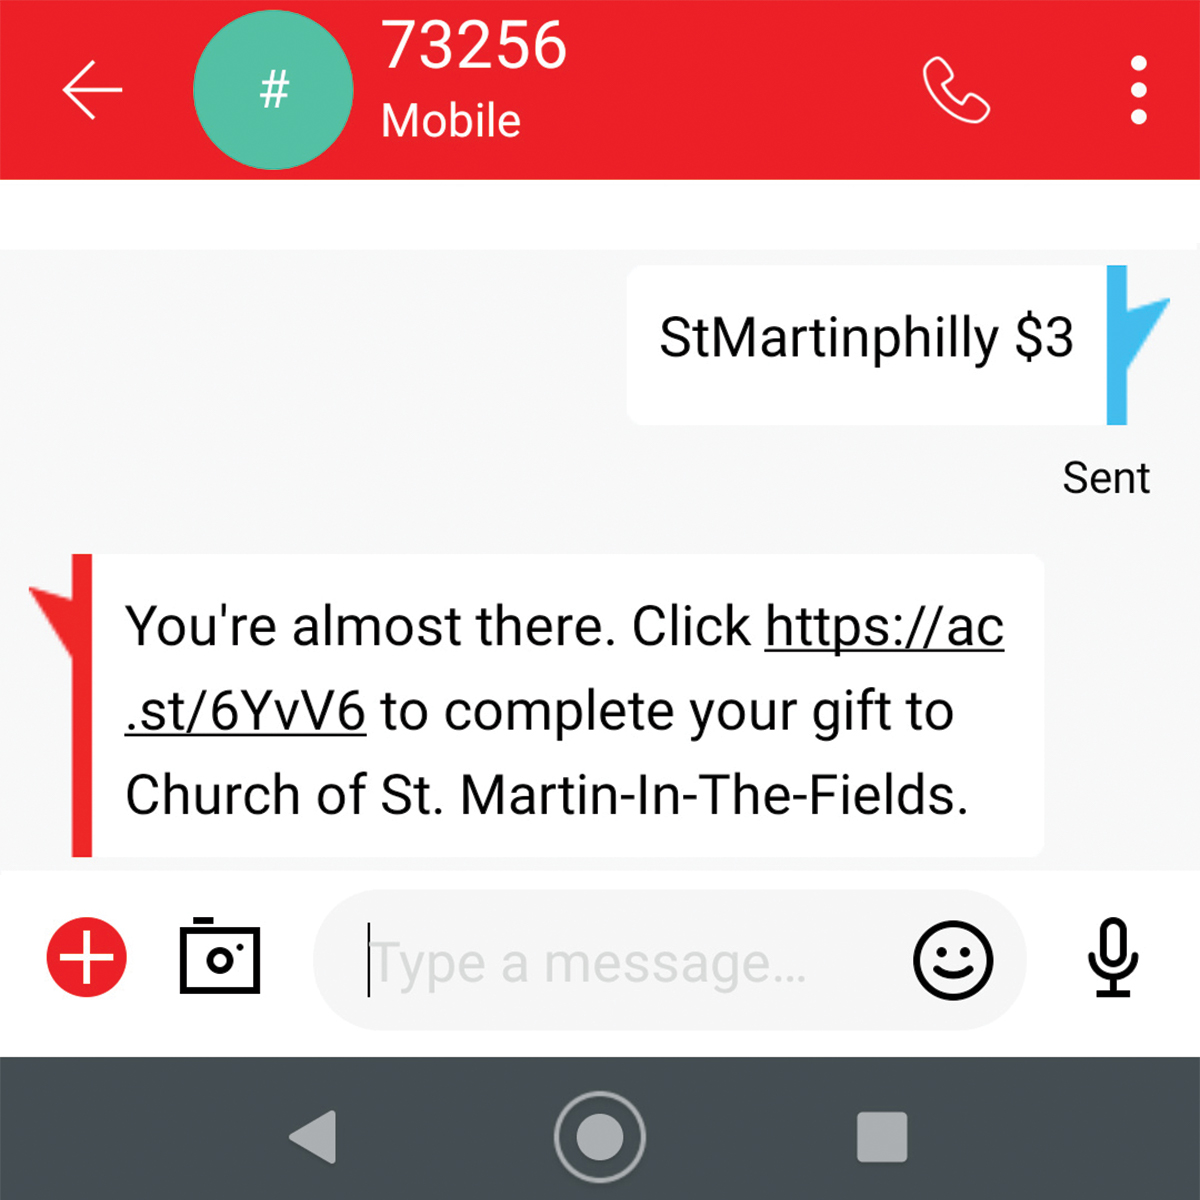 text-stmartinphilly-to-73256-6a_22